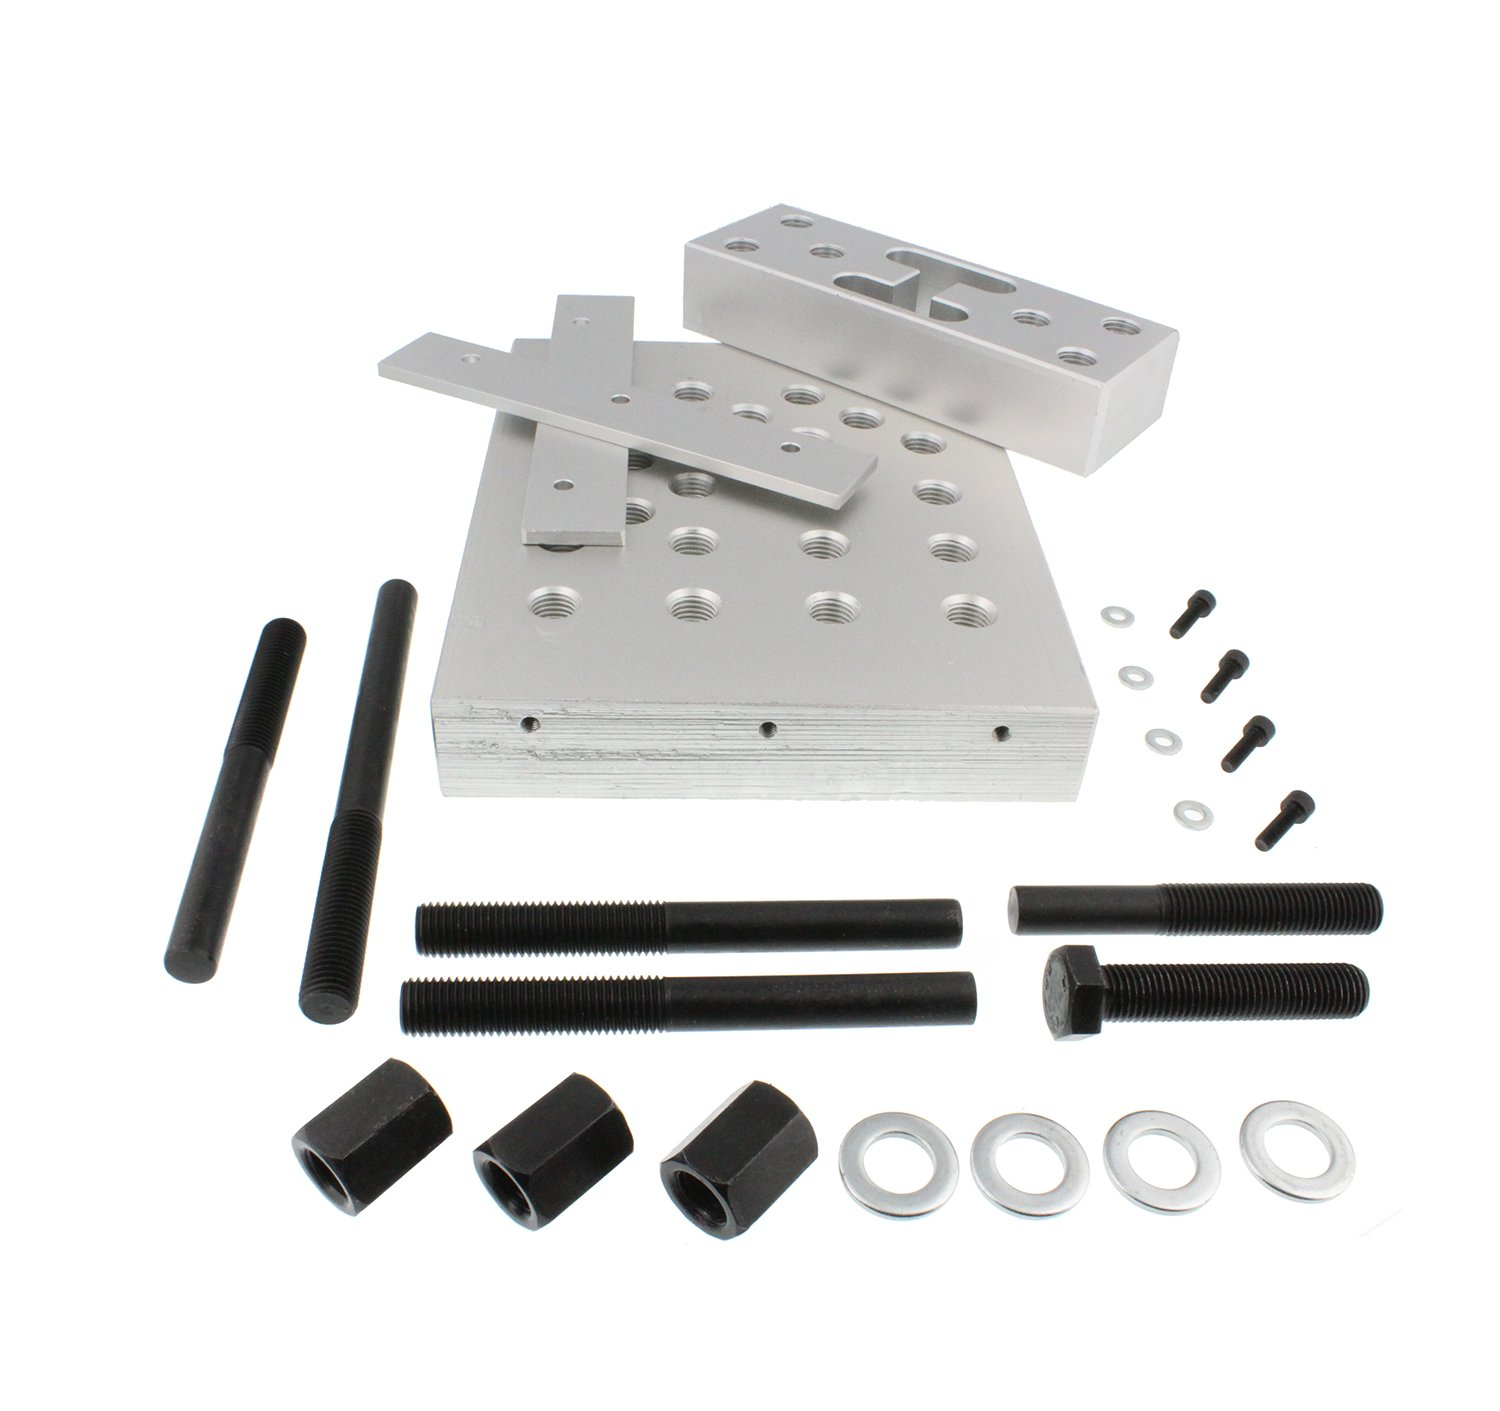 ABN Universal Drill Press Support Block Plate Tool Set Kit, 30 Ton – Bearing and Bushing Repair Removal Installation by ABN (Image #2)